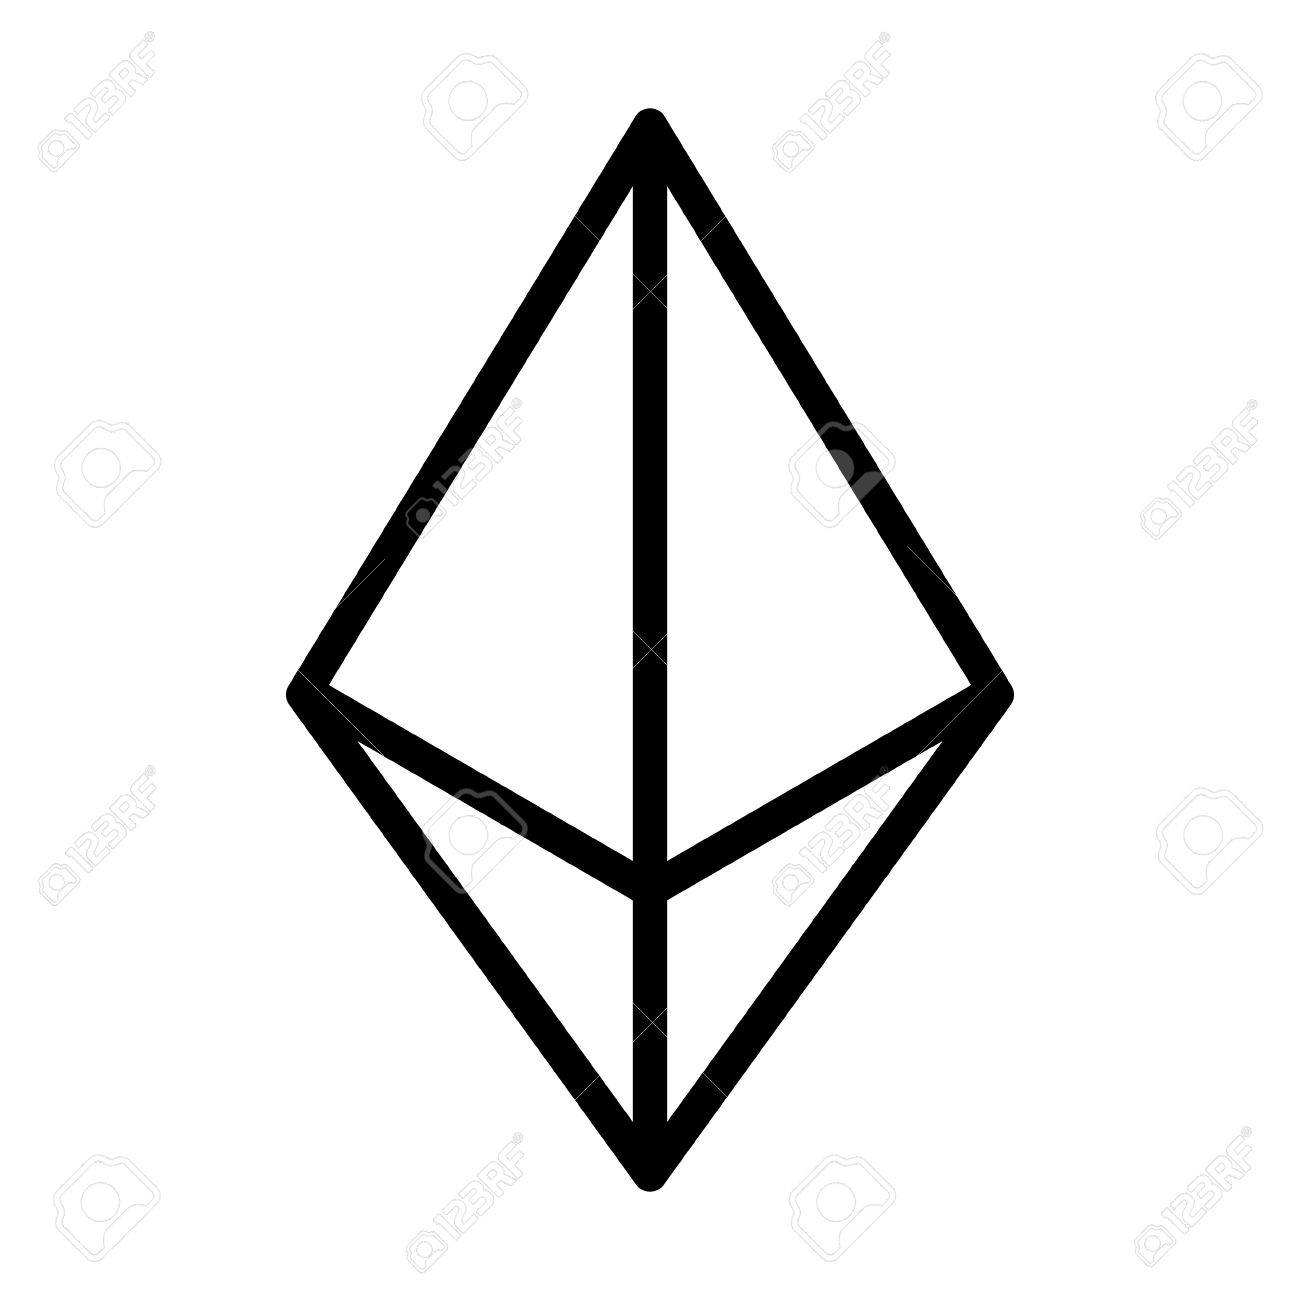 Ethereum crystal or ether cryptocurrency line art icon for apps